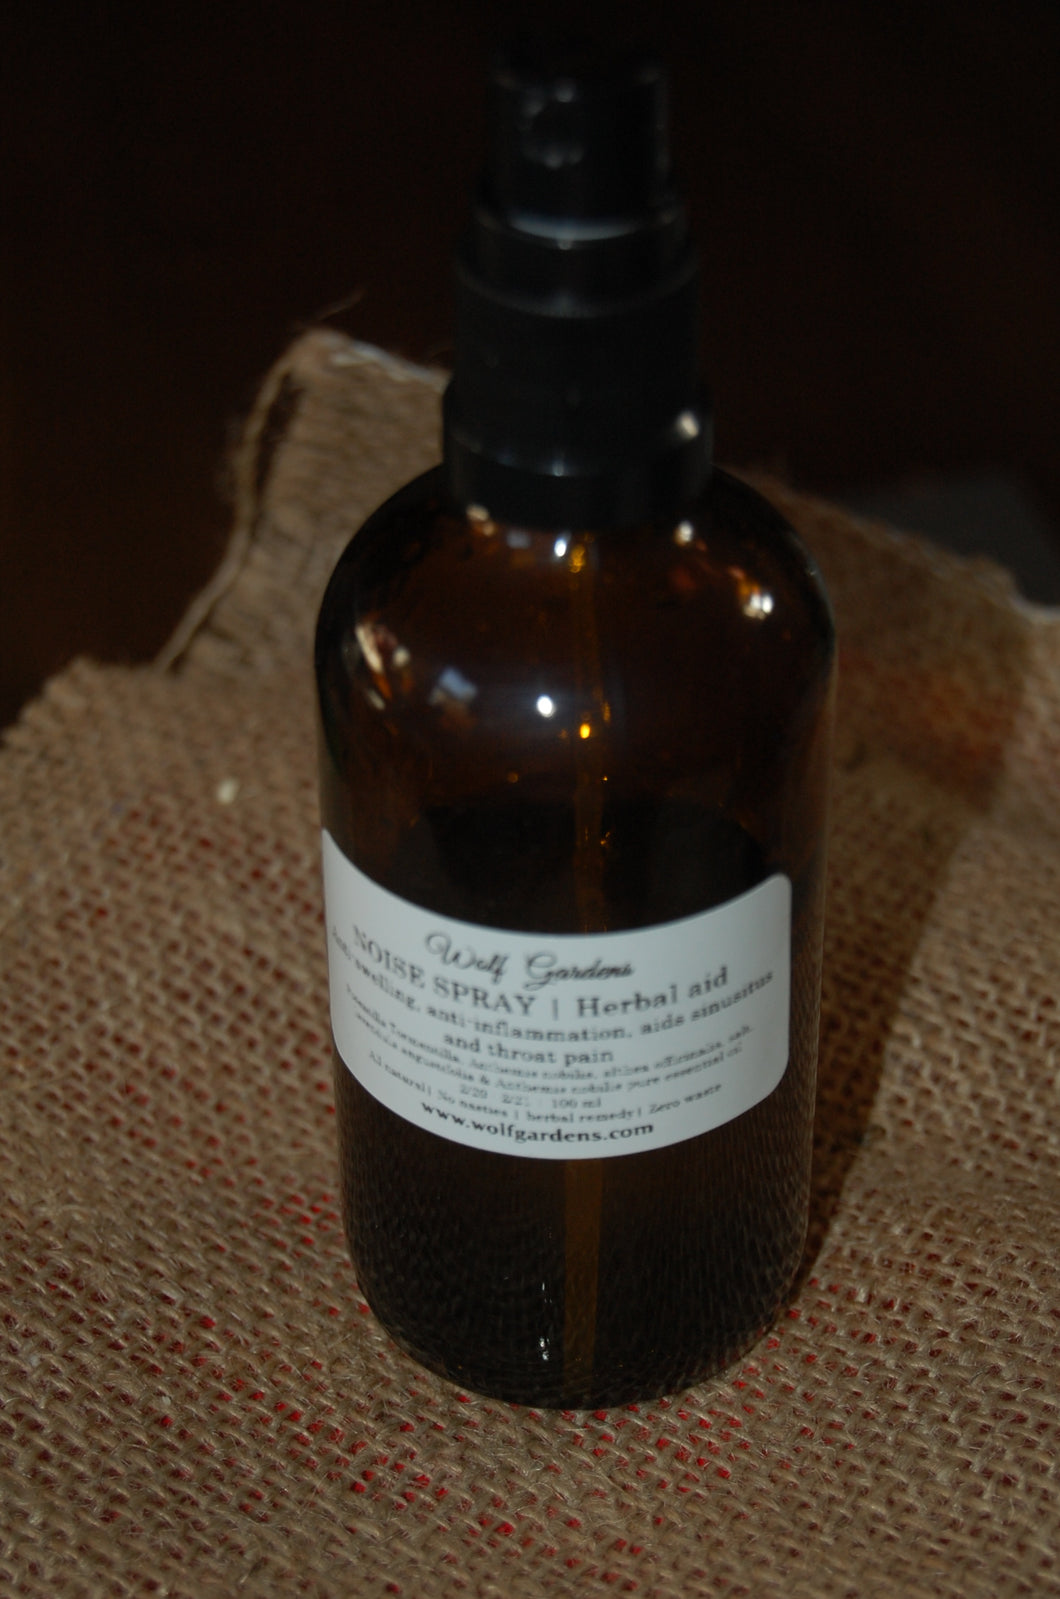 Nose spray healing natural blend